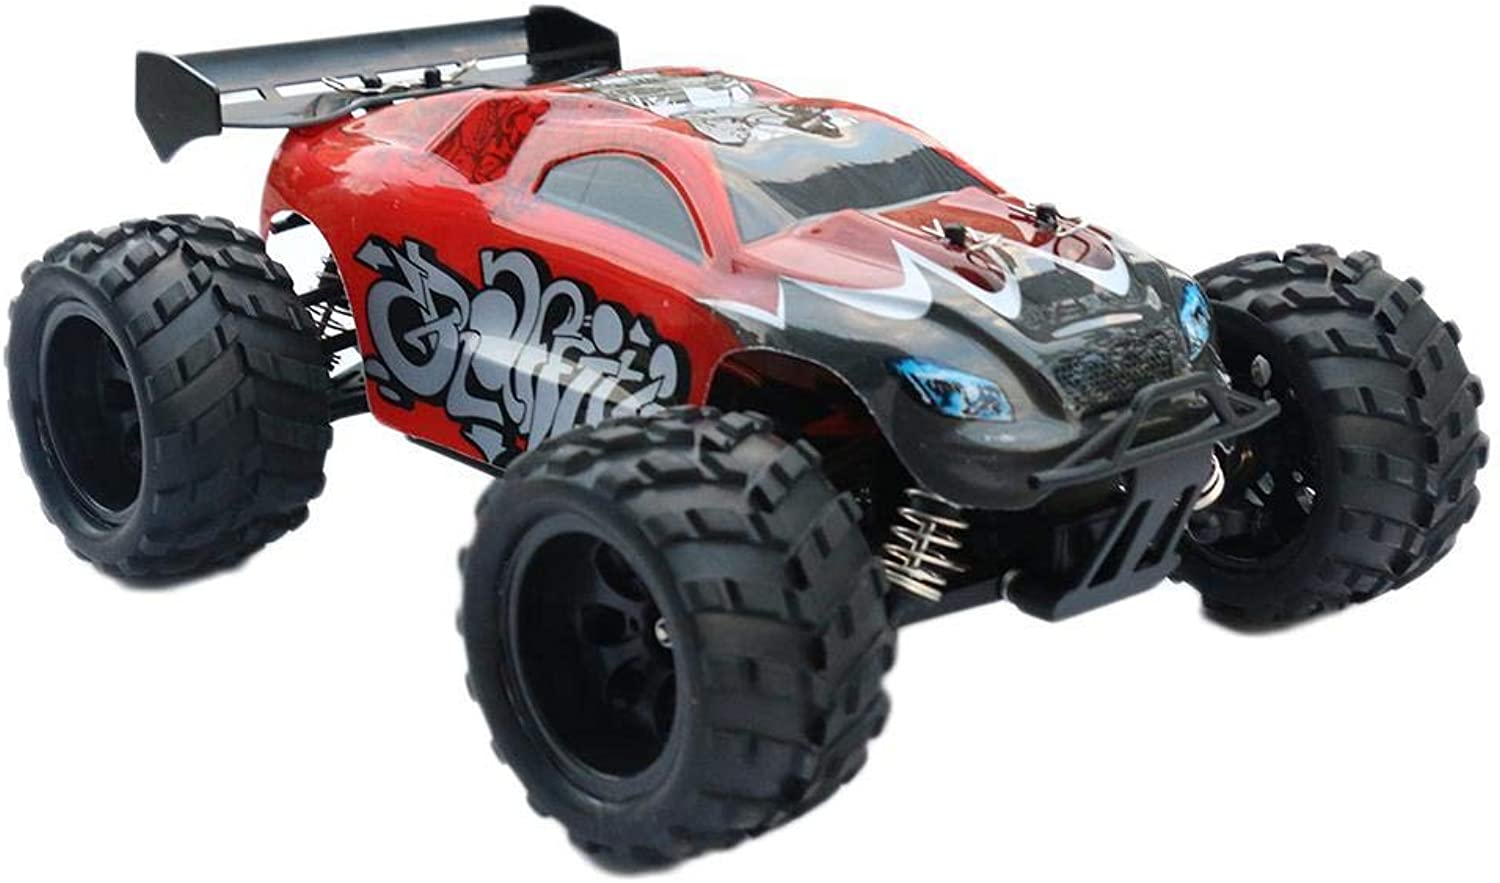 Generic TwoWheel Drive Remote Control Car High 1820min Speed   3 Years Old 15km h 100120min 50m RC Truck USB red